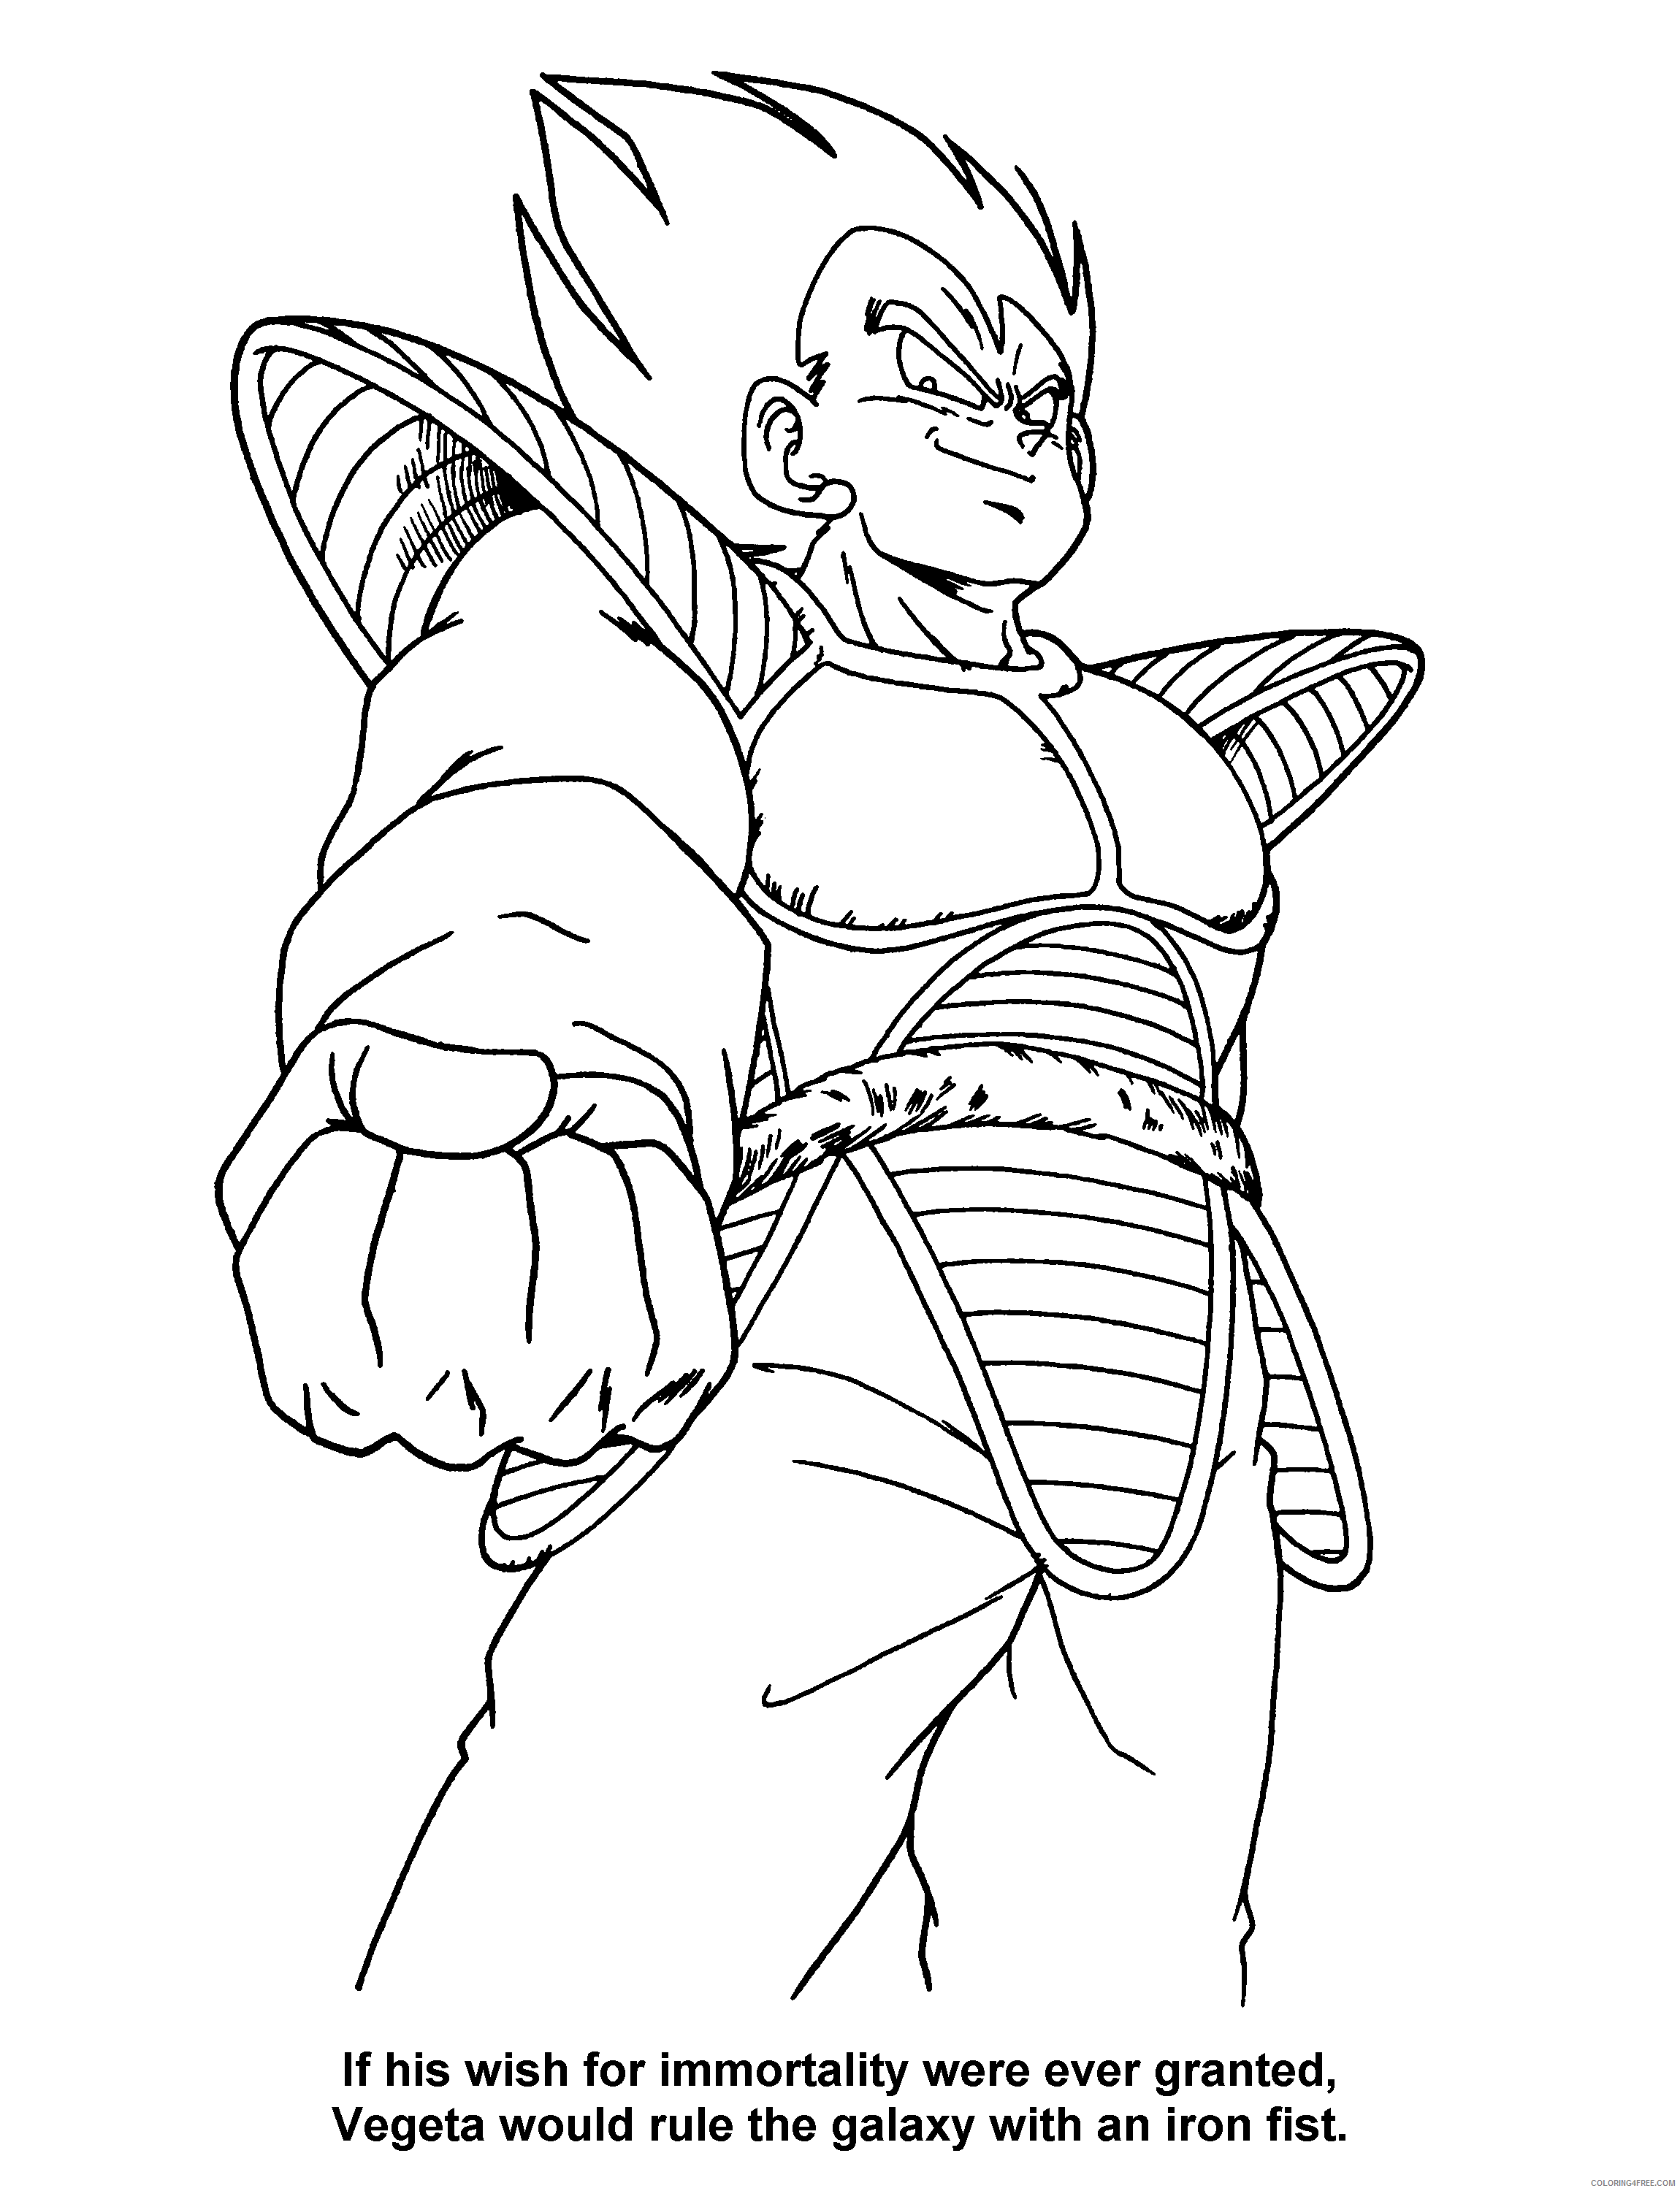 004 dragon ball z vegeta Printable Coloring4free